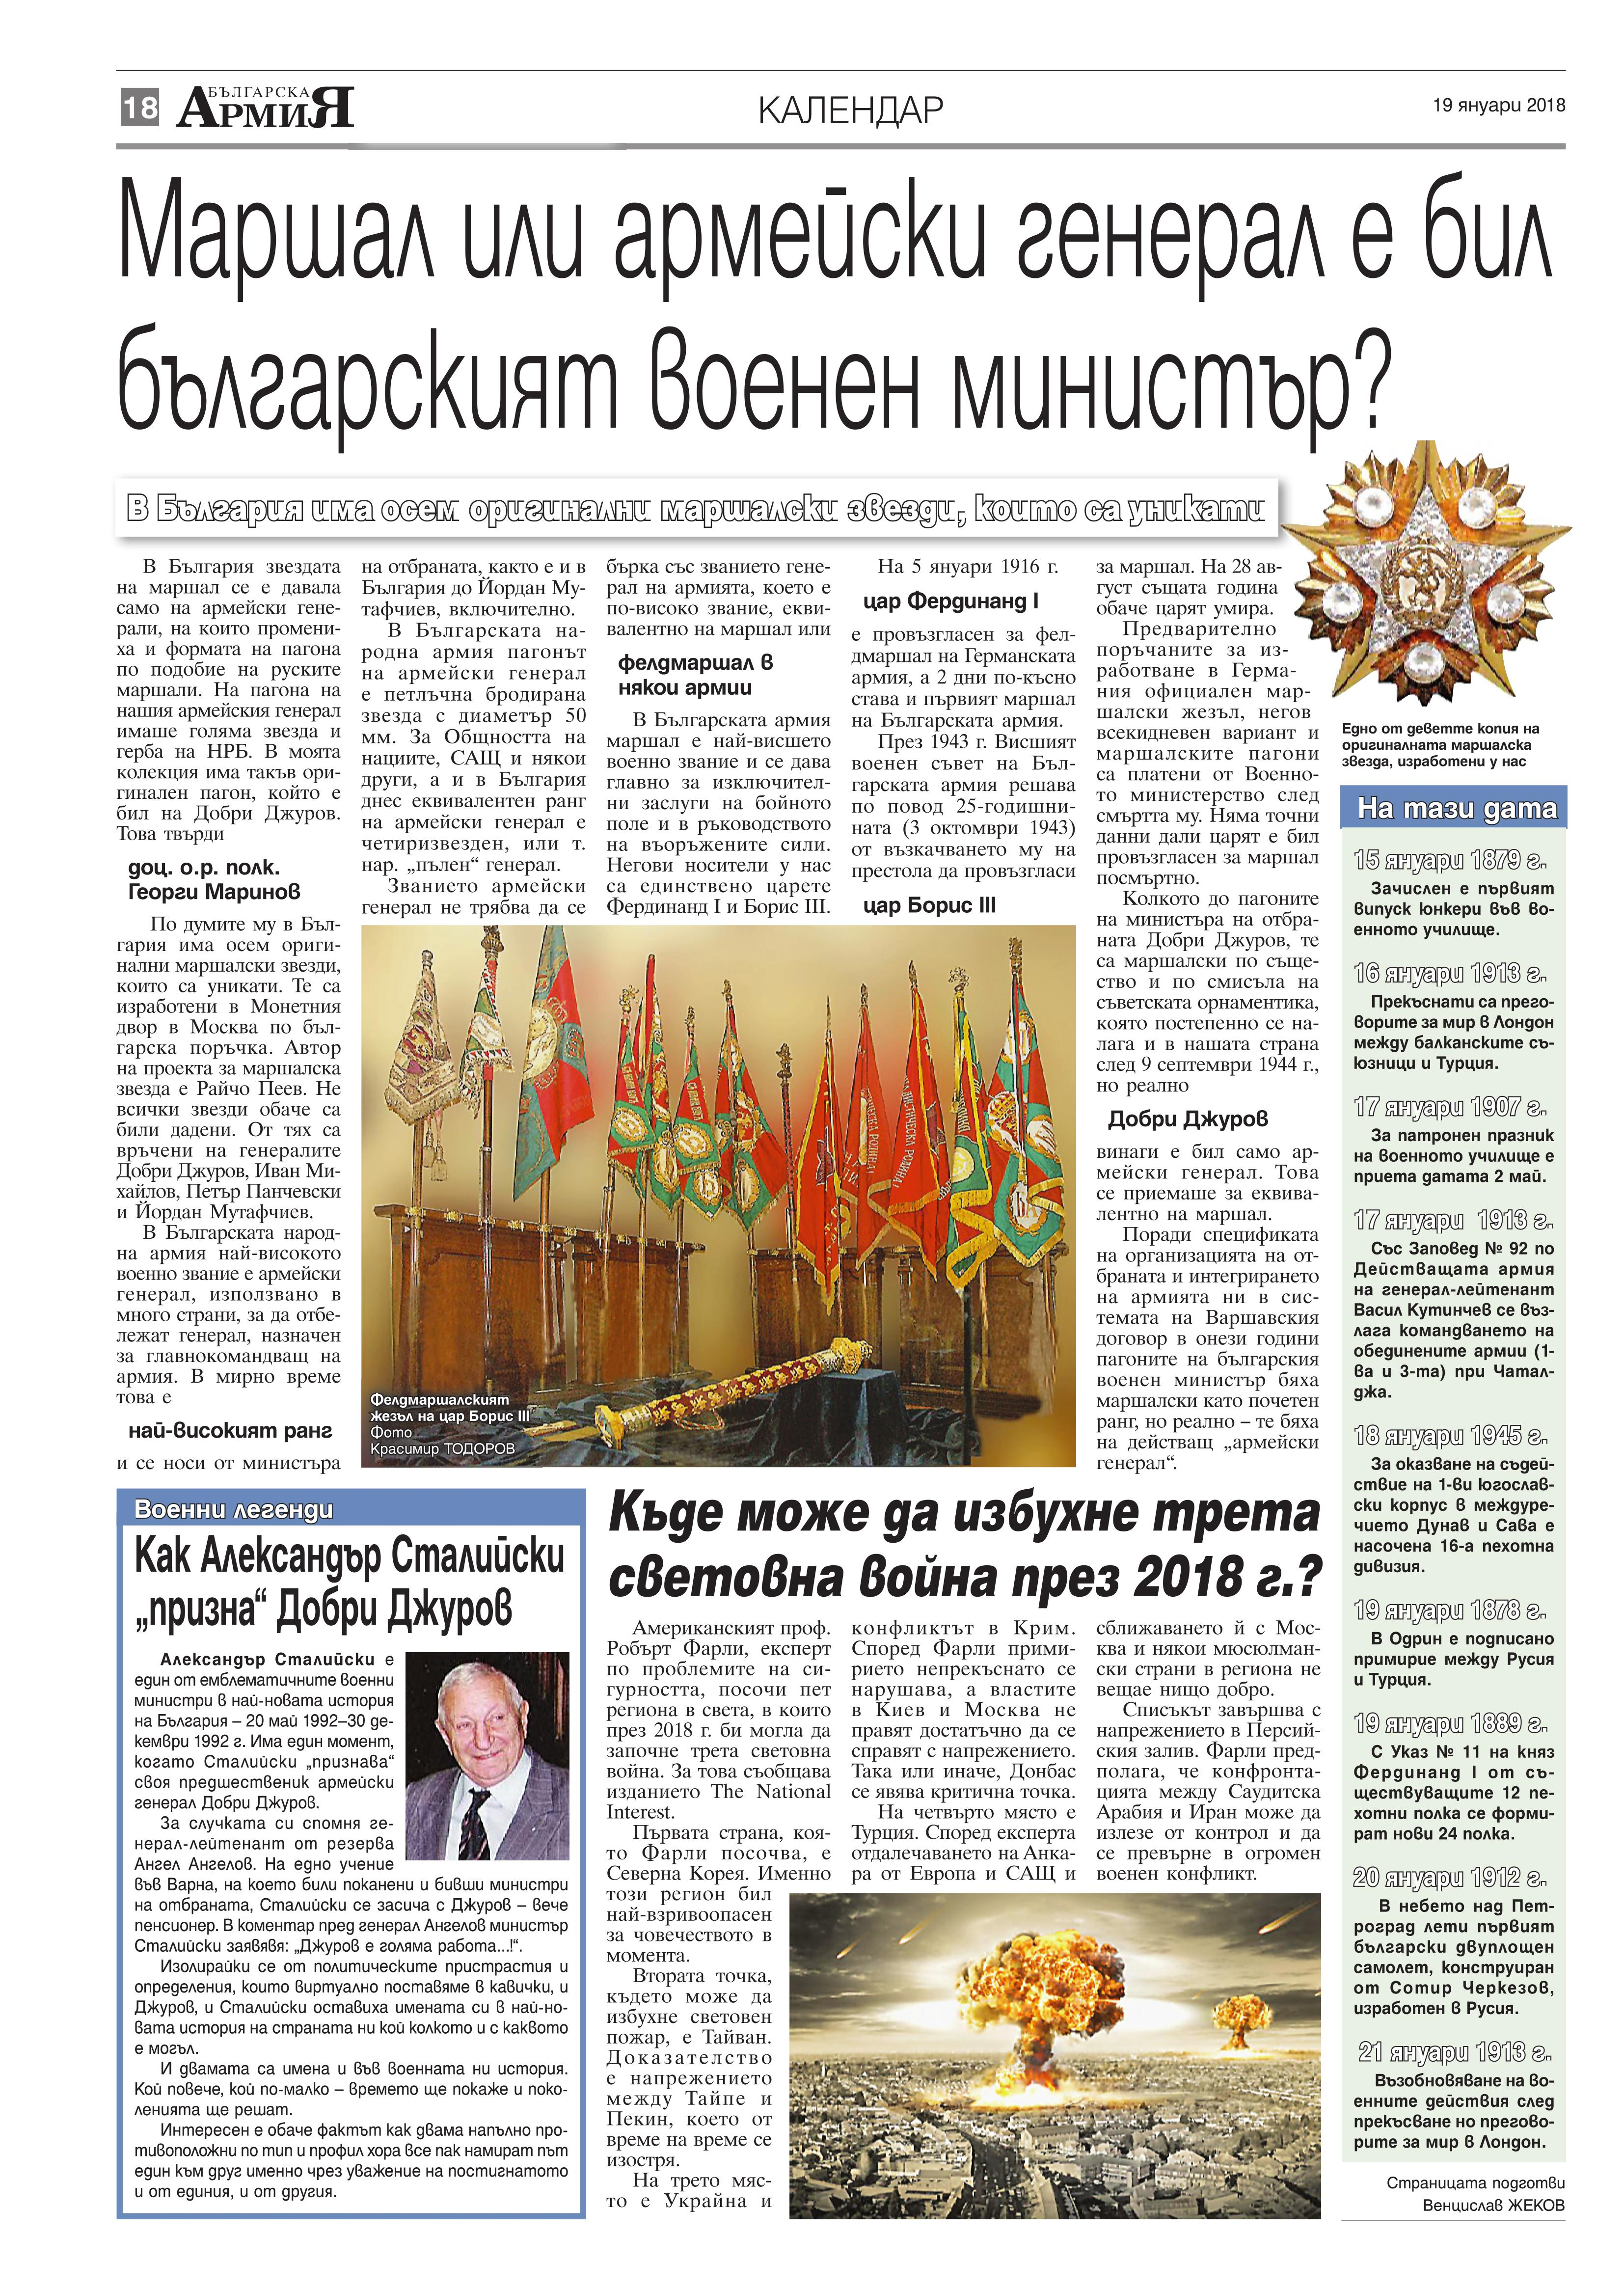 http://armymedia.bg/wp-content/uploads/2015/06/18.page1_-37.jpg